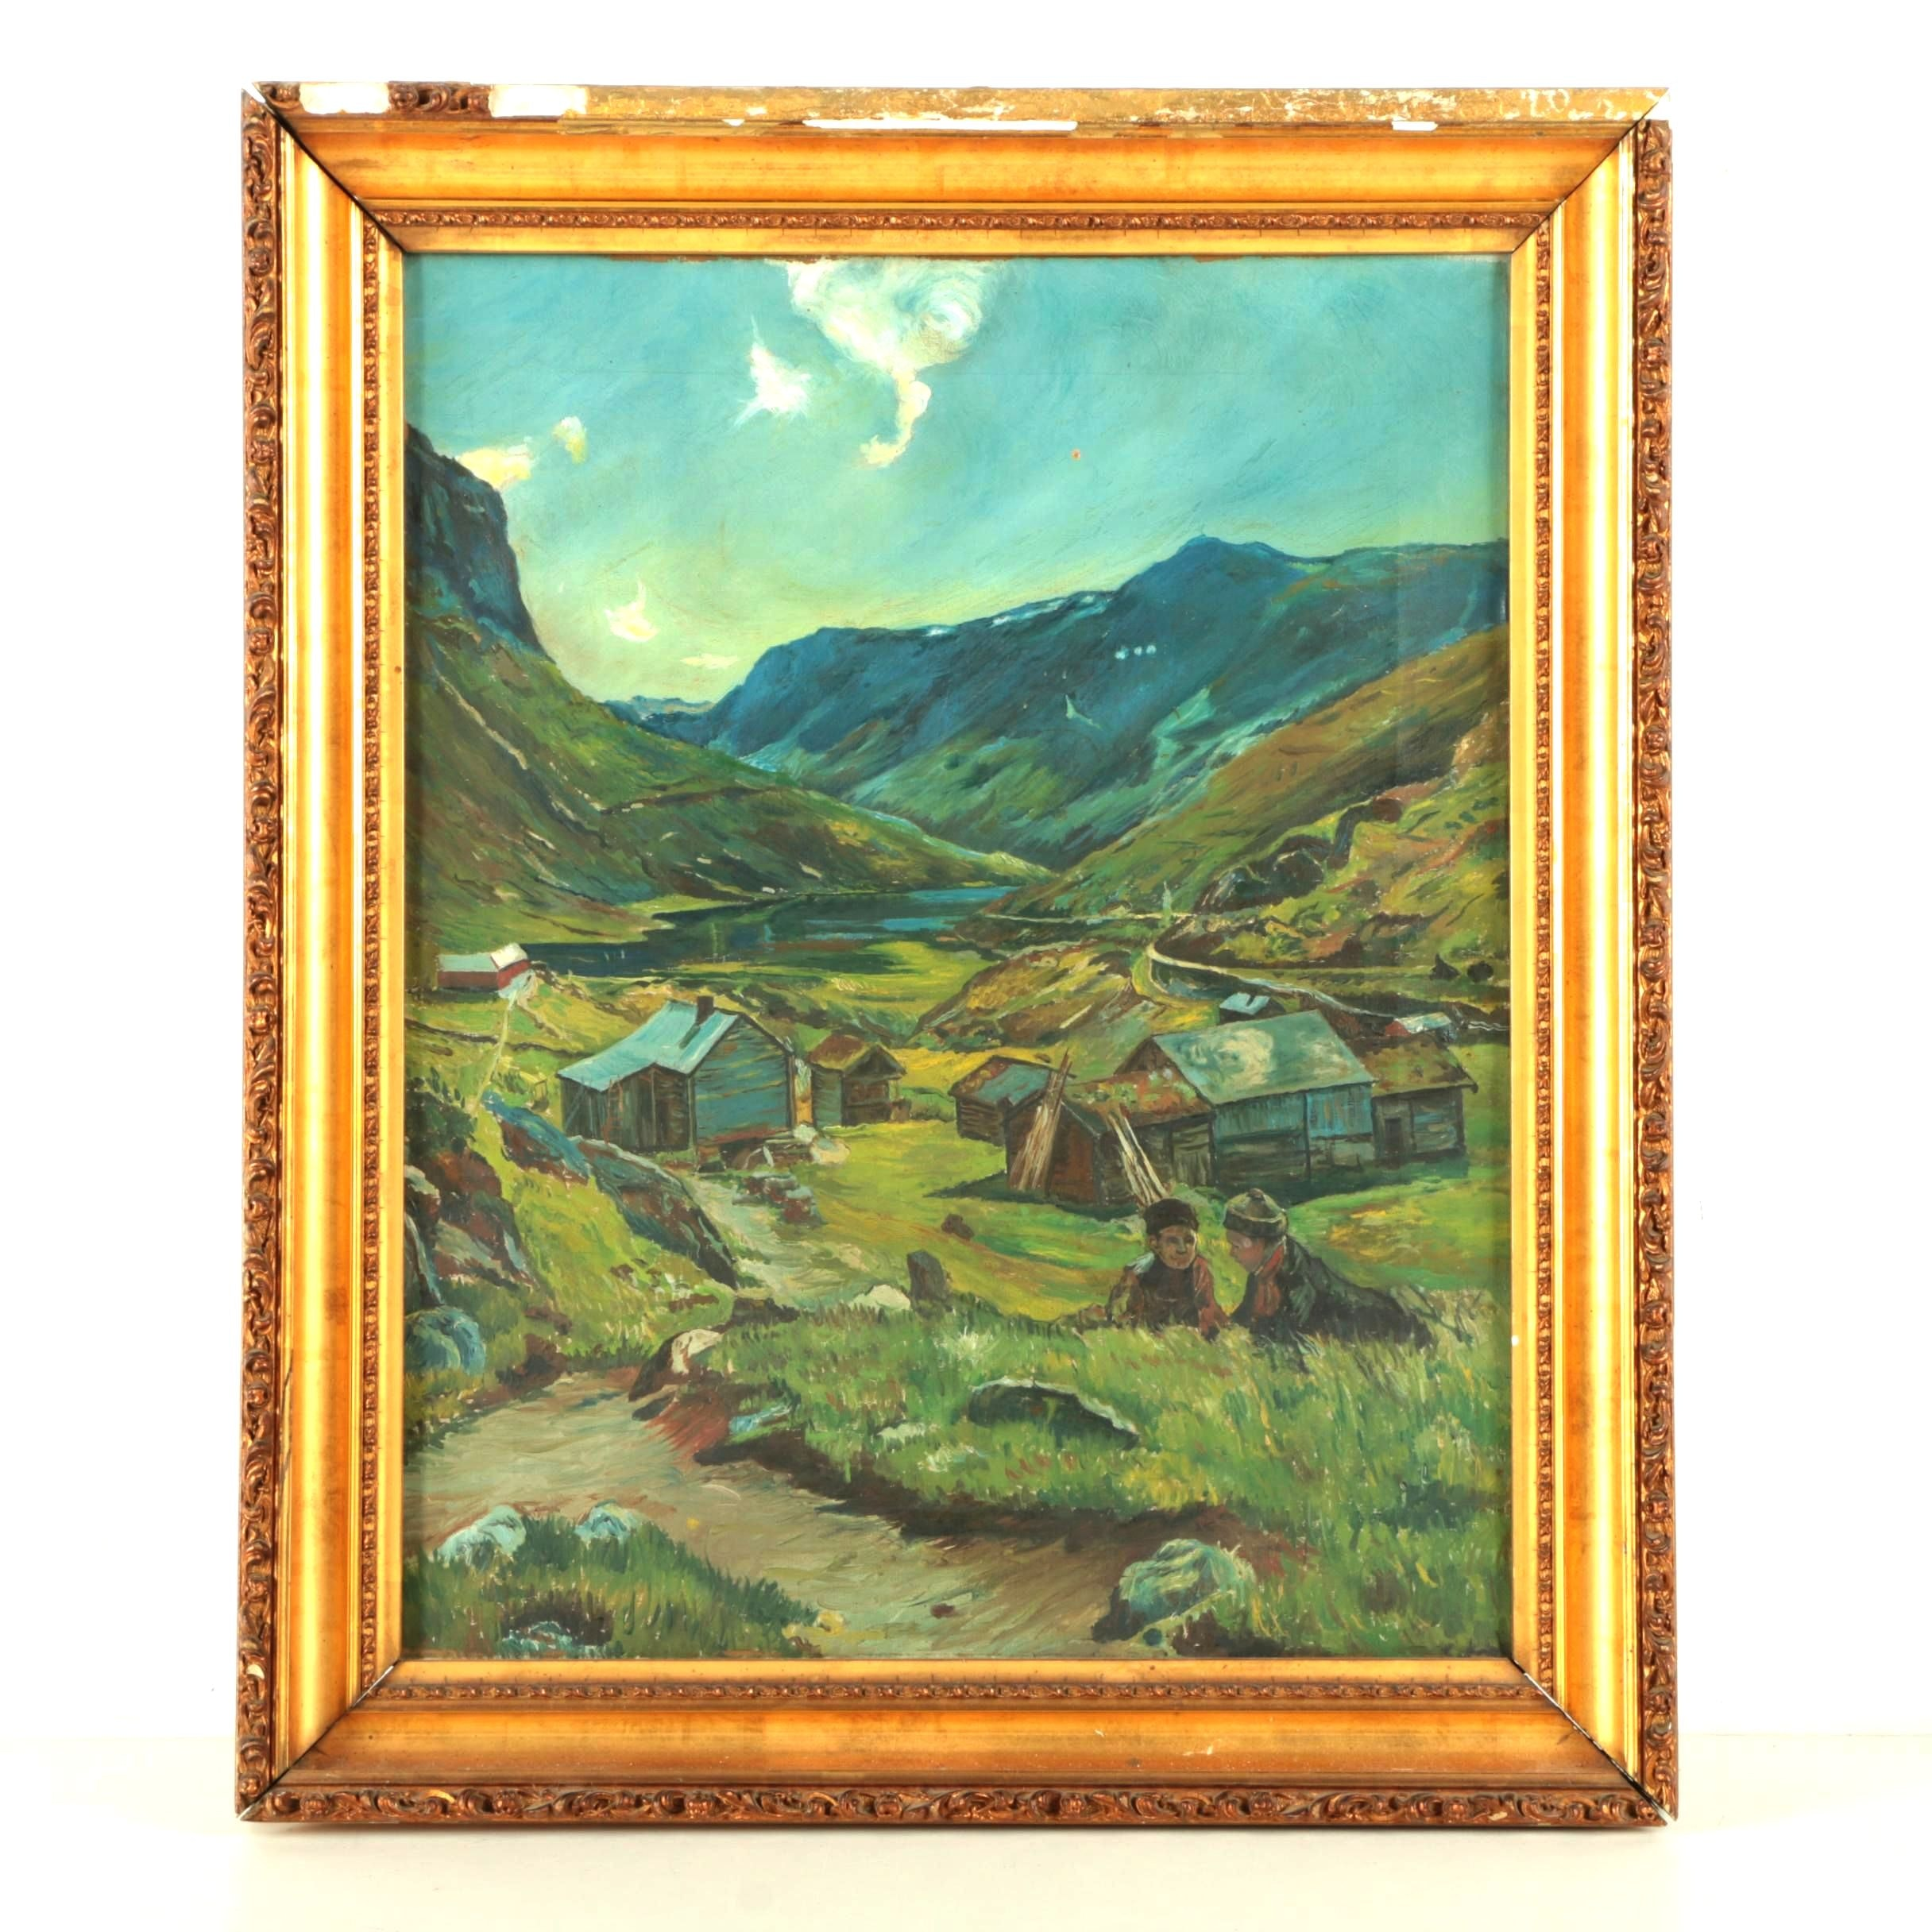 Oil Painting on Canvas of Pastoral Village